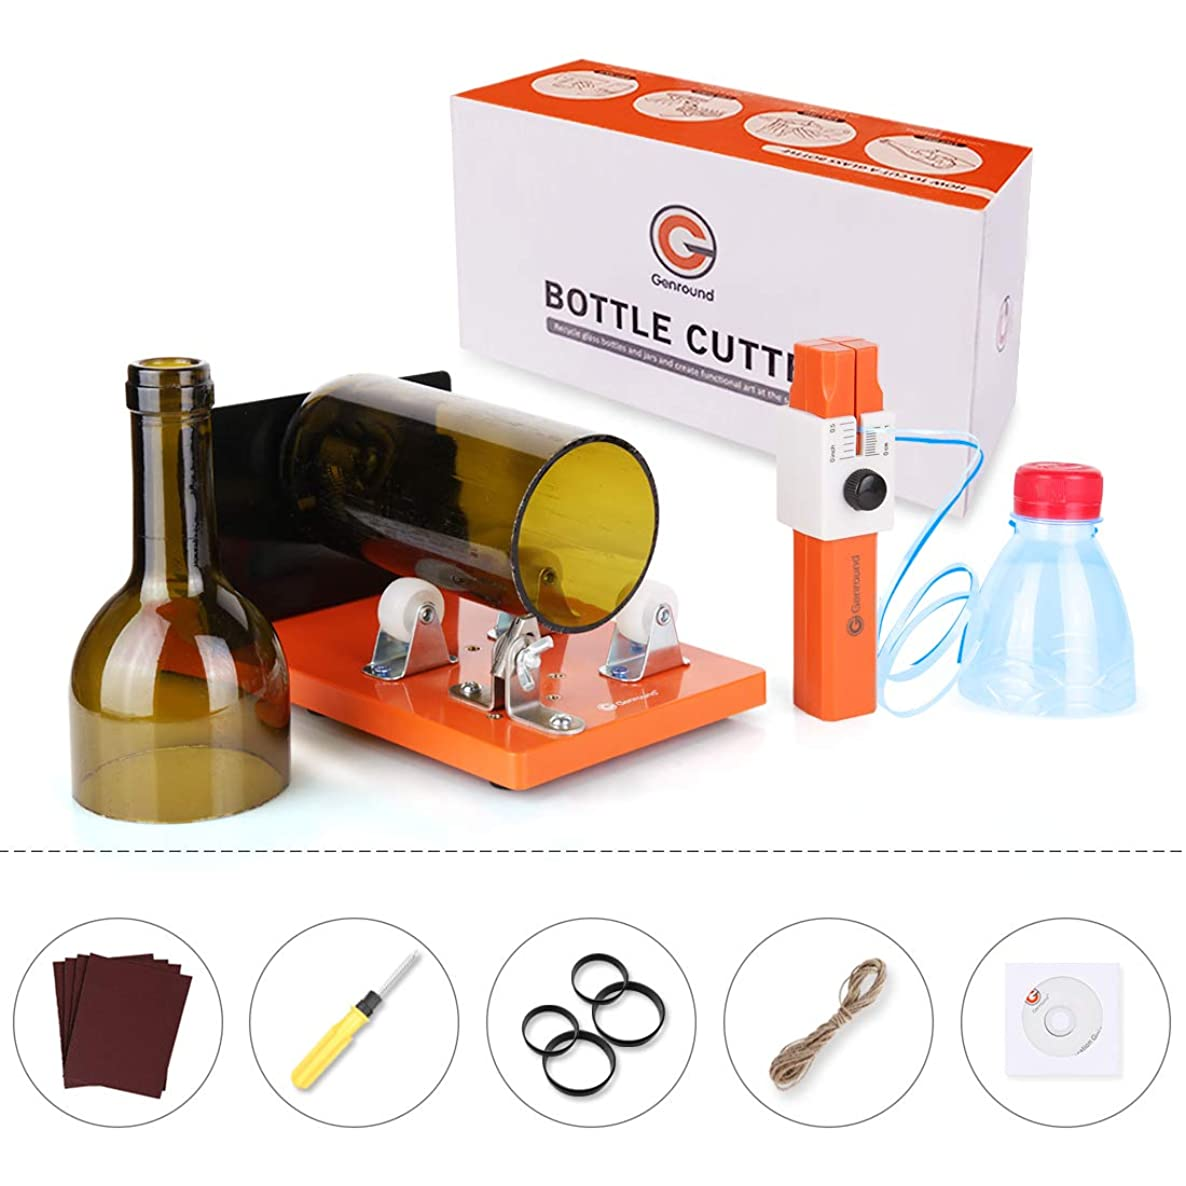 Genround 2.1 Glass Bottle Cutter and Plastic Bottle Cutter Set for Plastic and Glass Bottle Cutting | Cut Round, Square and Oval Glass Bottle from Neck to Bottom | Bottle Cutting Tool for DIY Projects